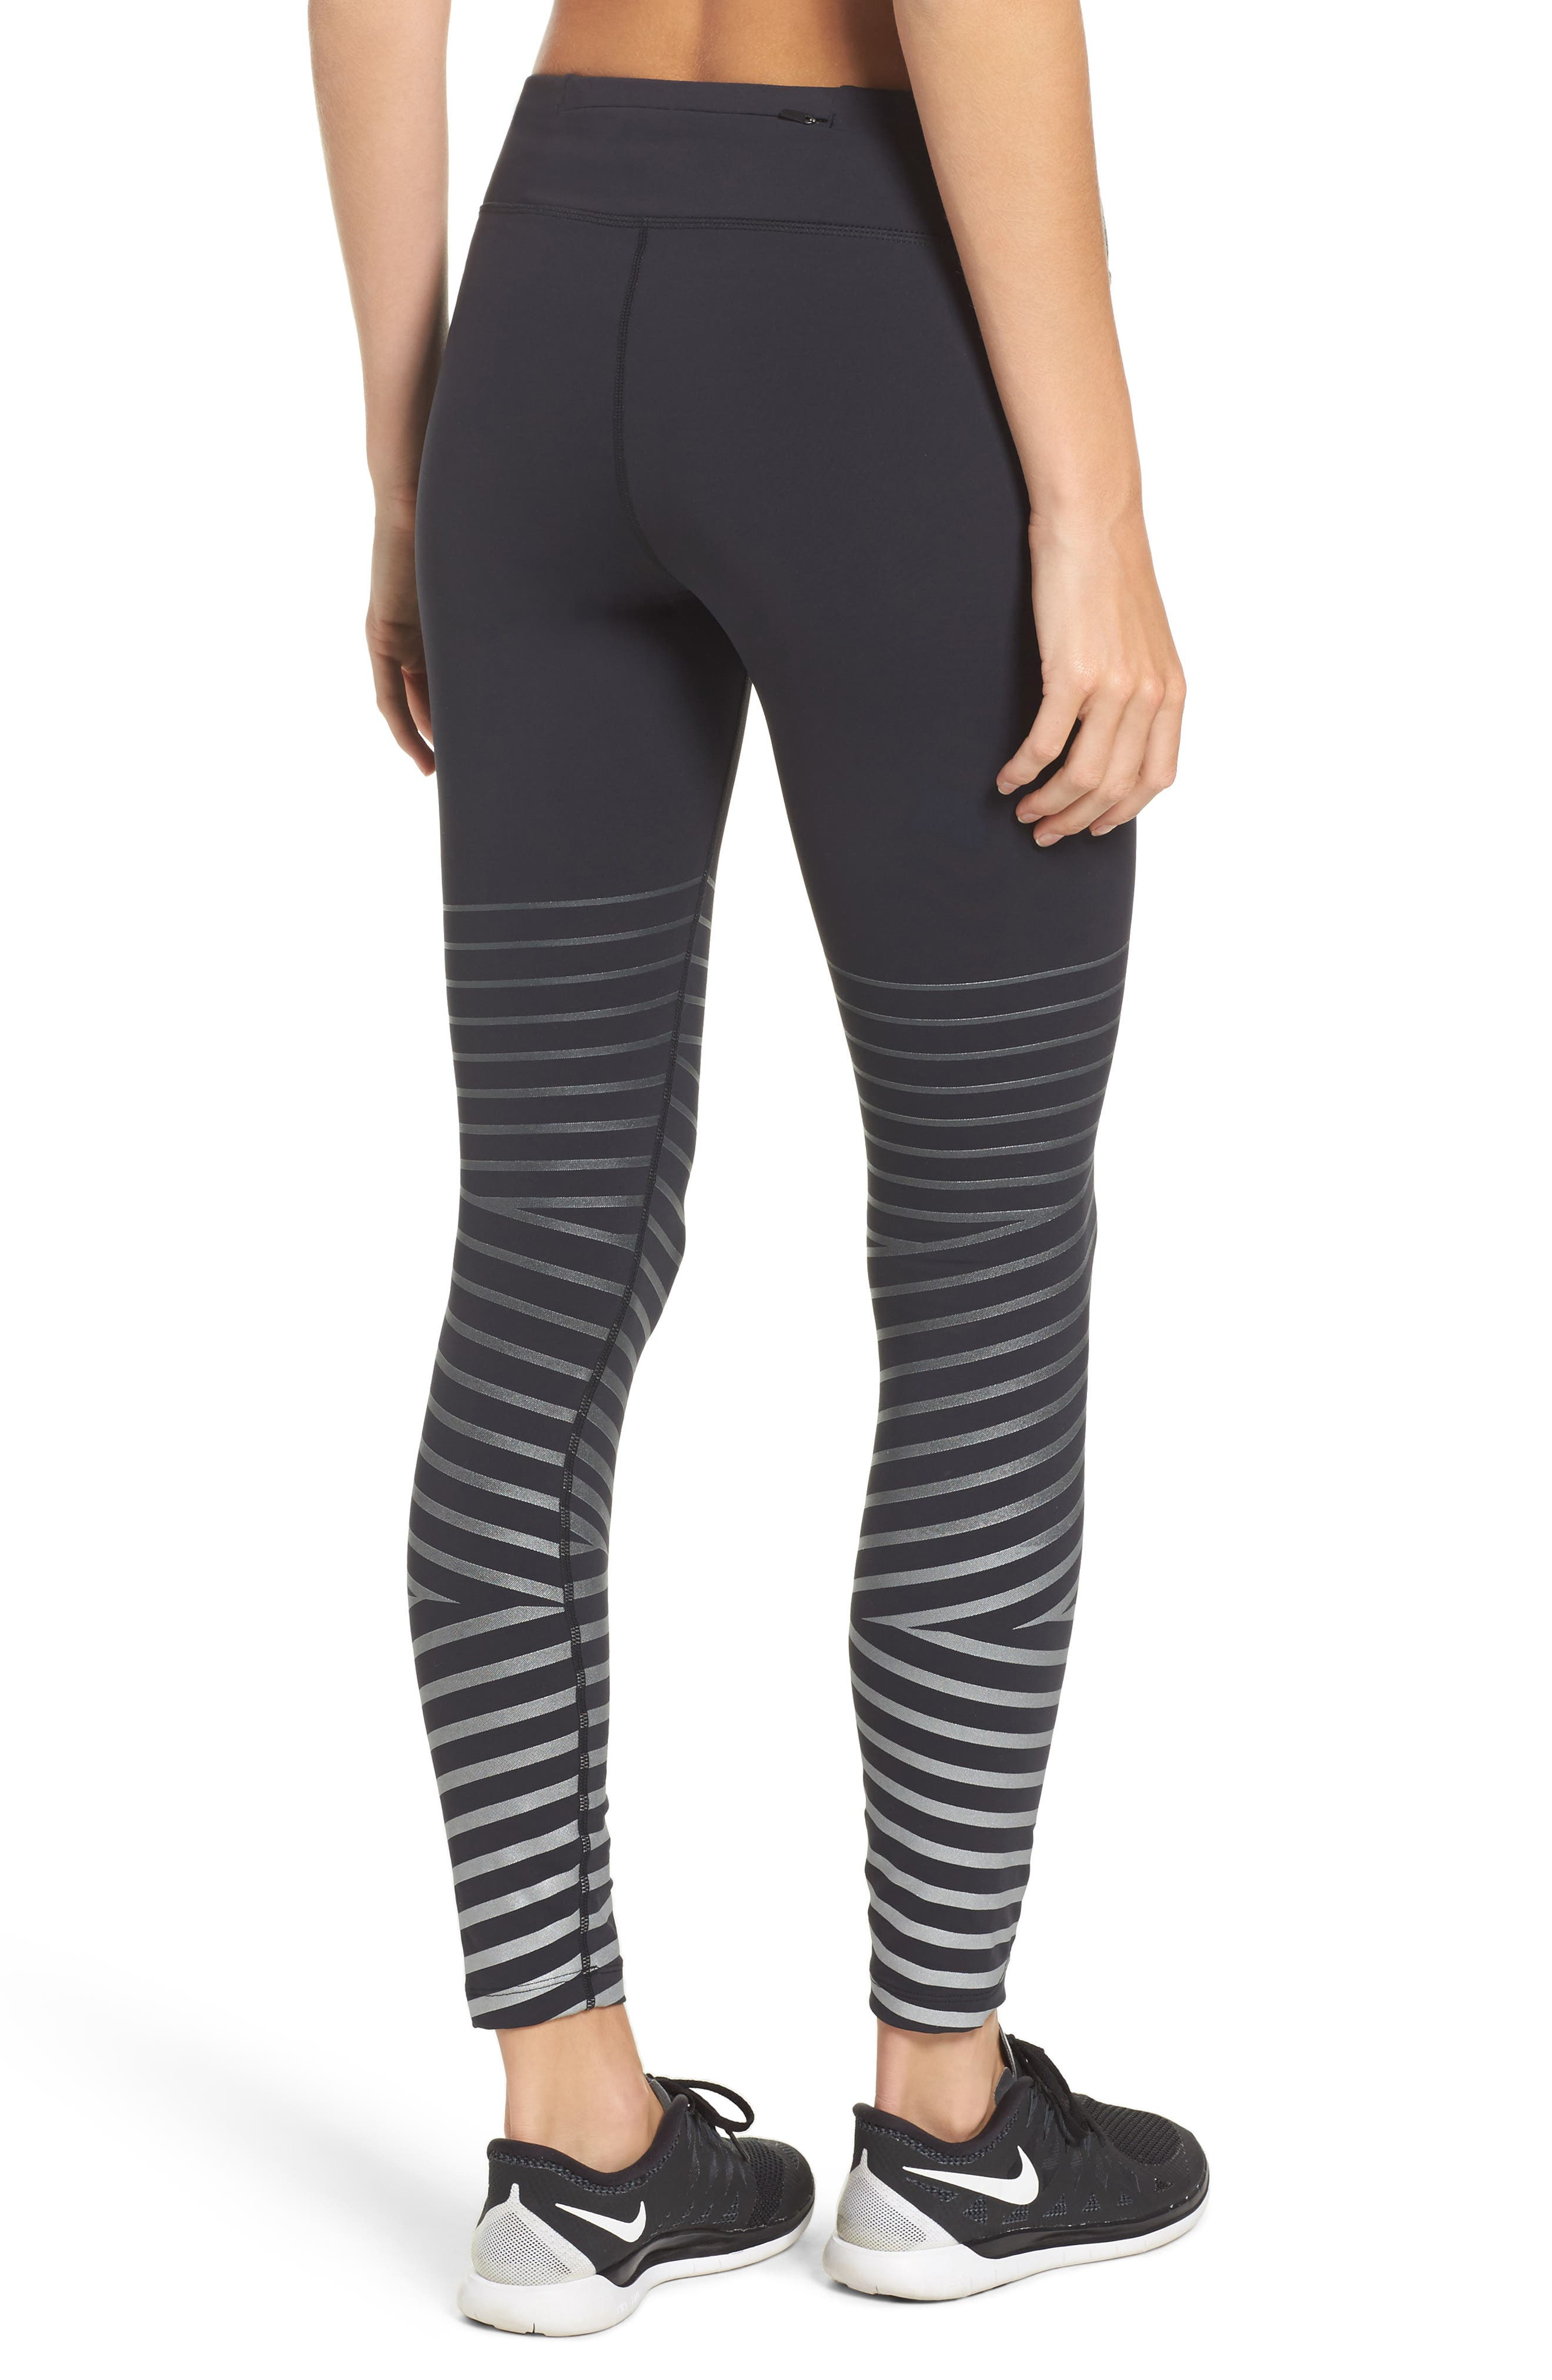 Power Epic Lux Flash Running Tights,                             Alternate thumbnail 2, color,                             010